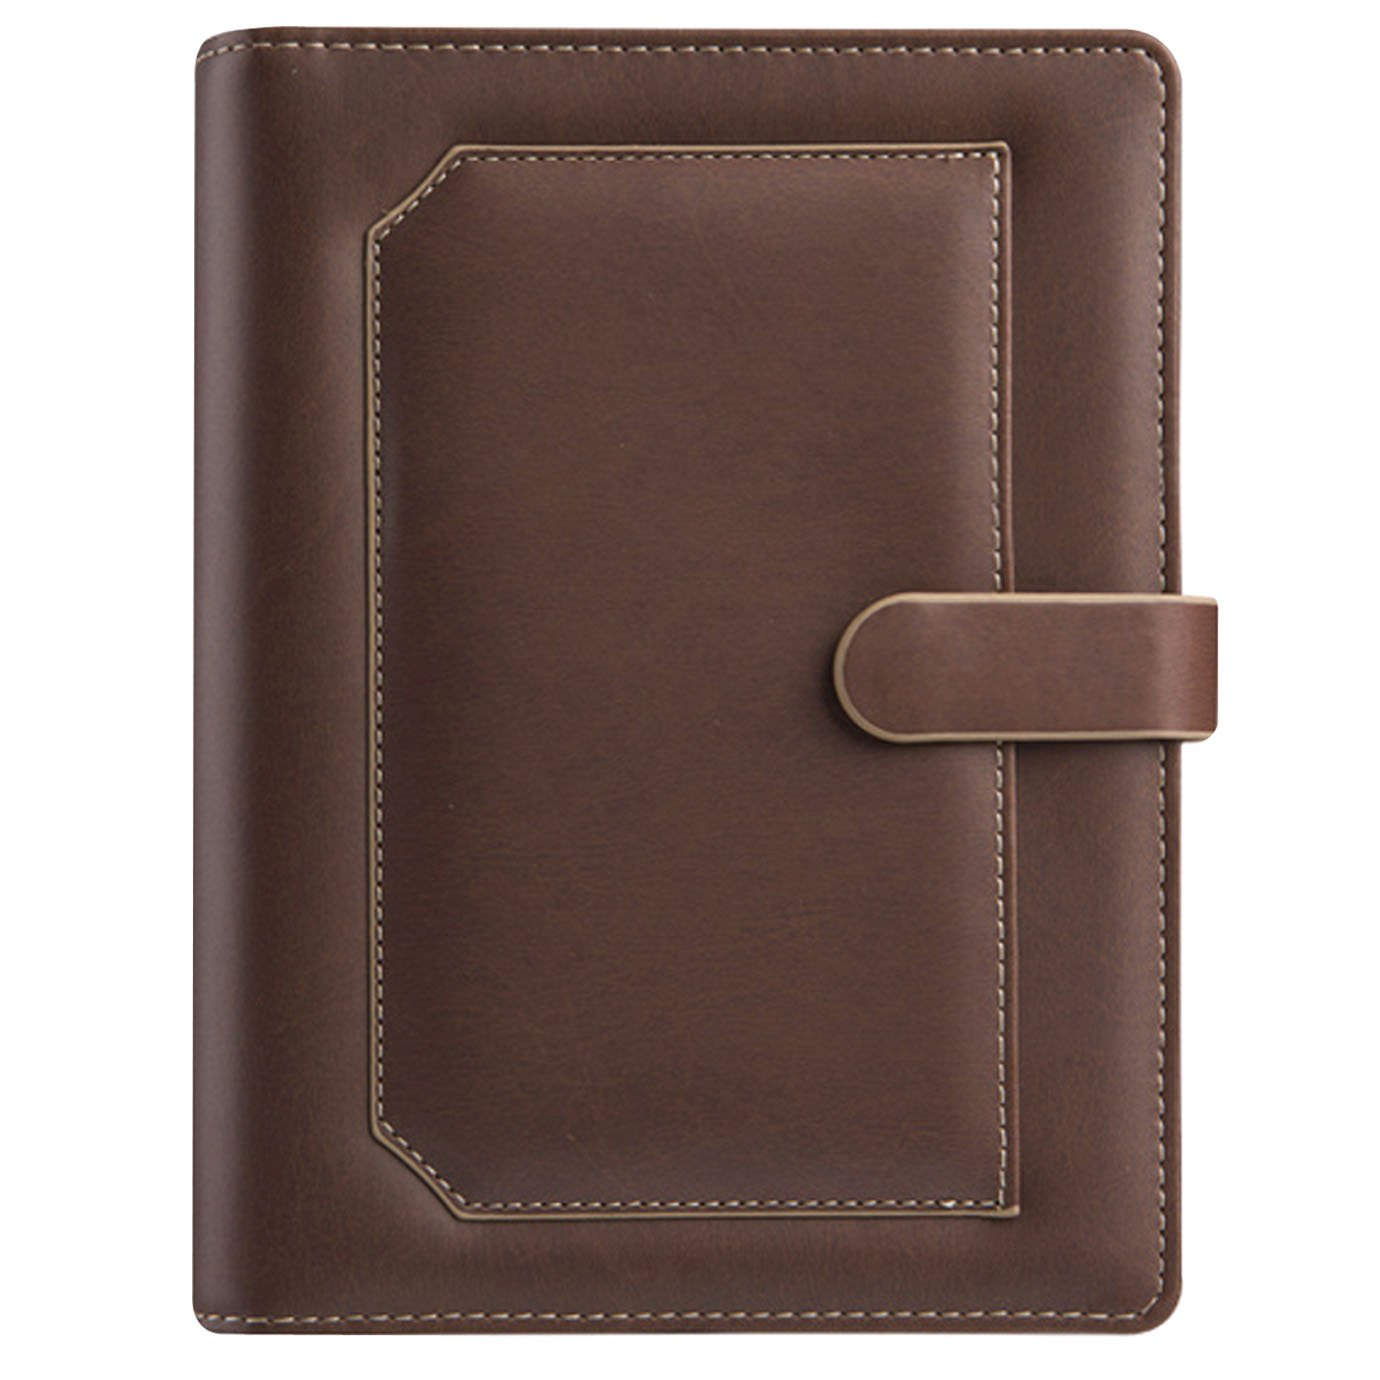 Office Home School Faux Leather Cover A5 Notebook Journal Notepad Folder Paper File For Travelers Business Sketching And Writing(Brown)